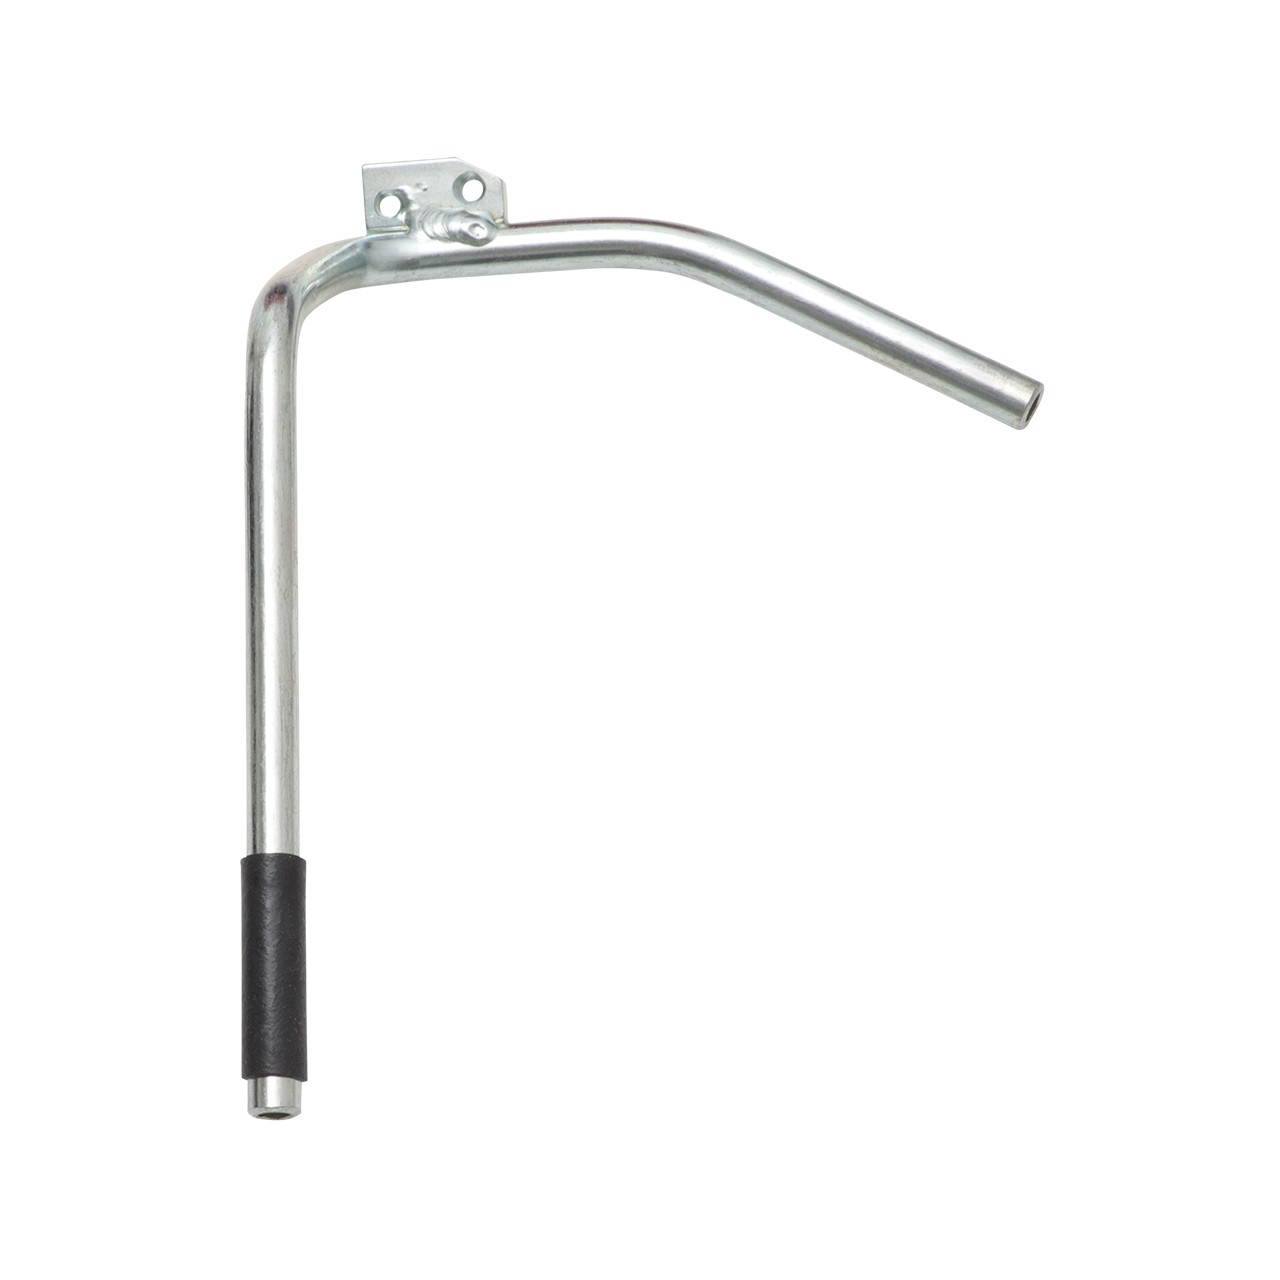 cable holder 32.090.004